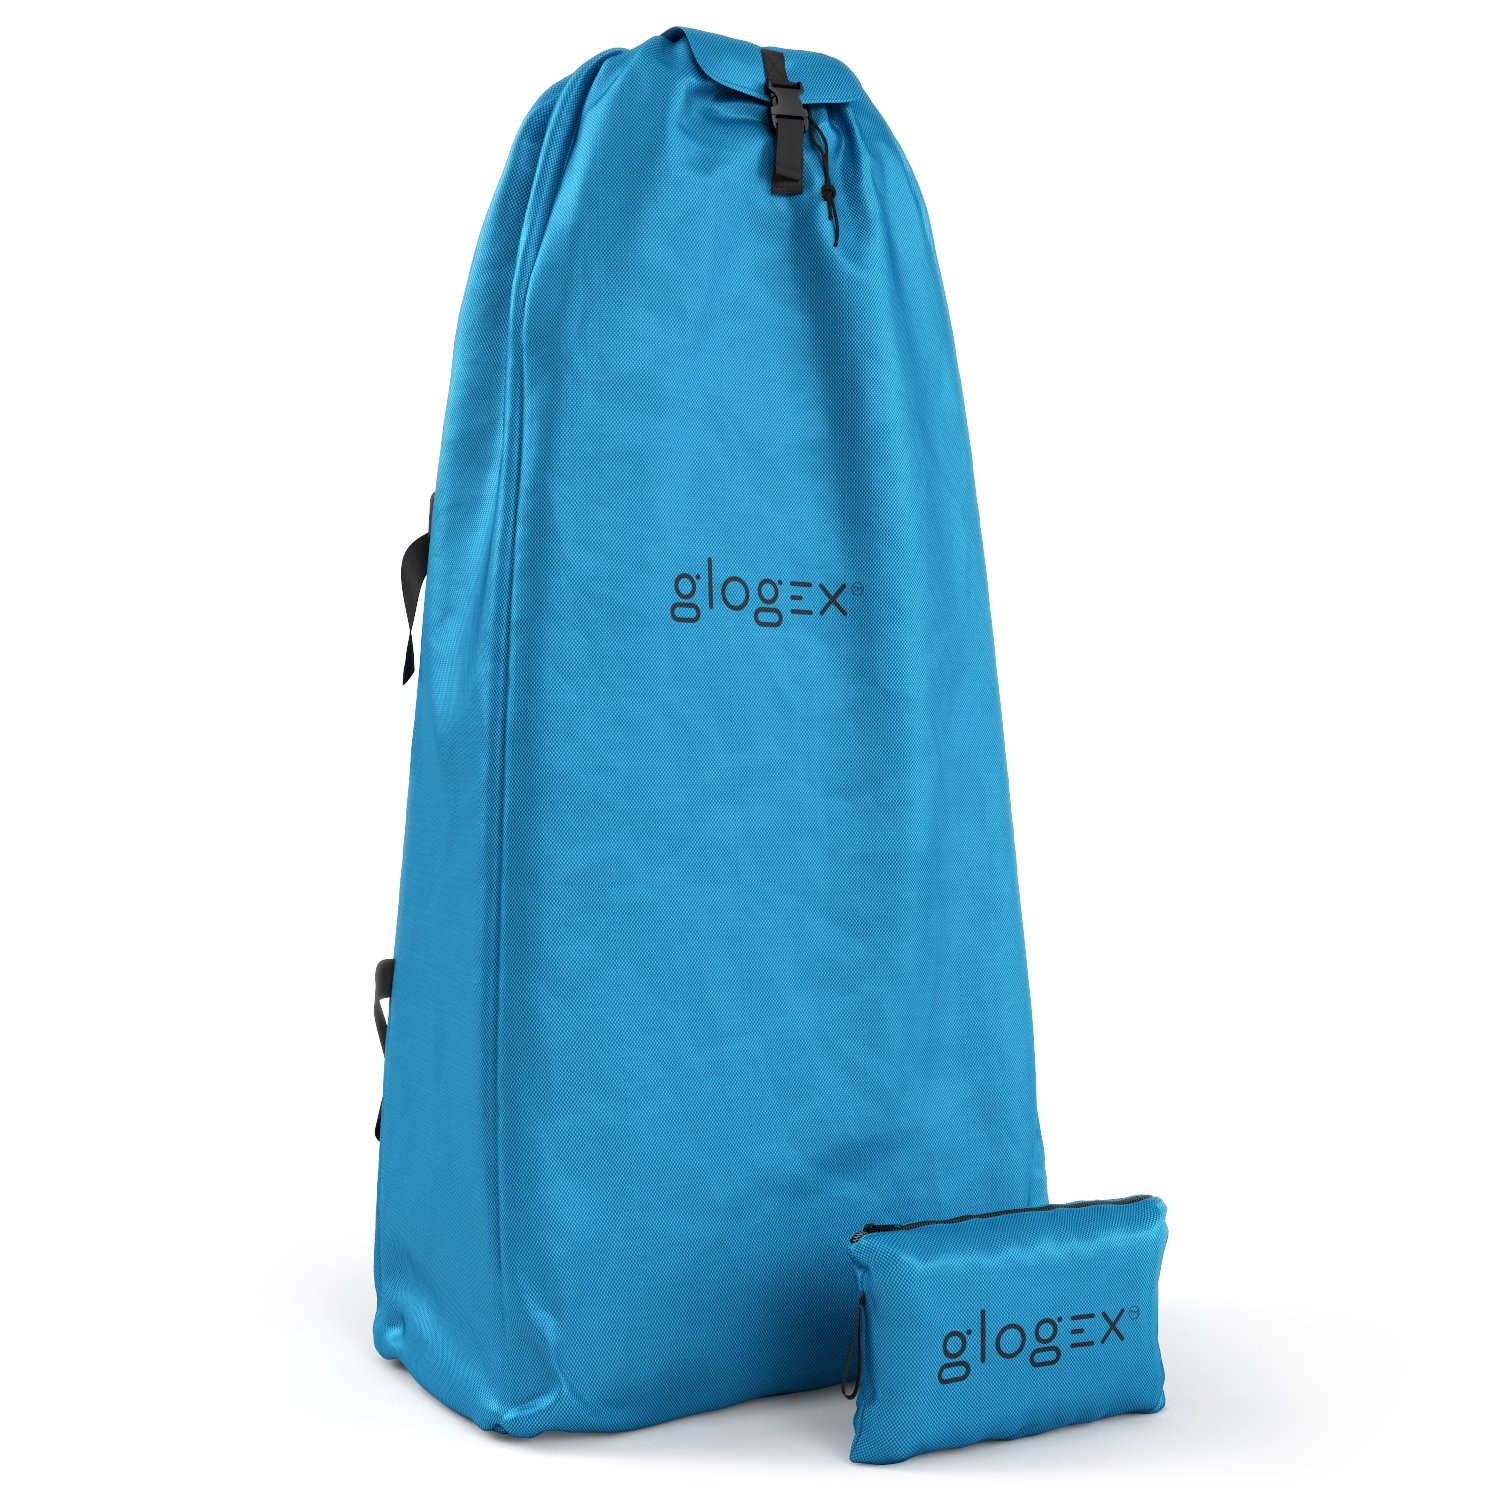 Glogex The Stroller Bag for Airplane - Convenient Gate Check Bag for Stroller - Lightweight, Waterproof, Carry Strap, Easy to Transport by Glogex